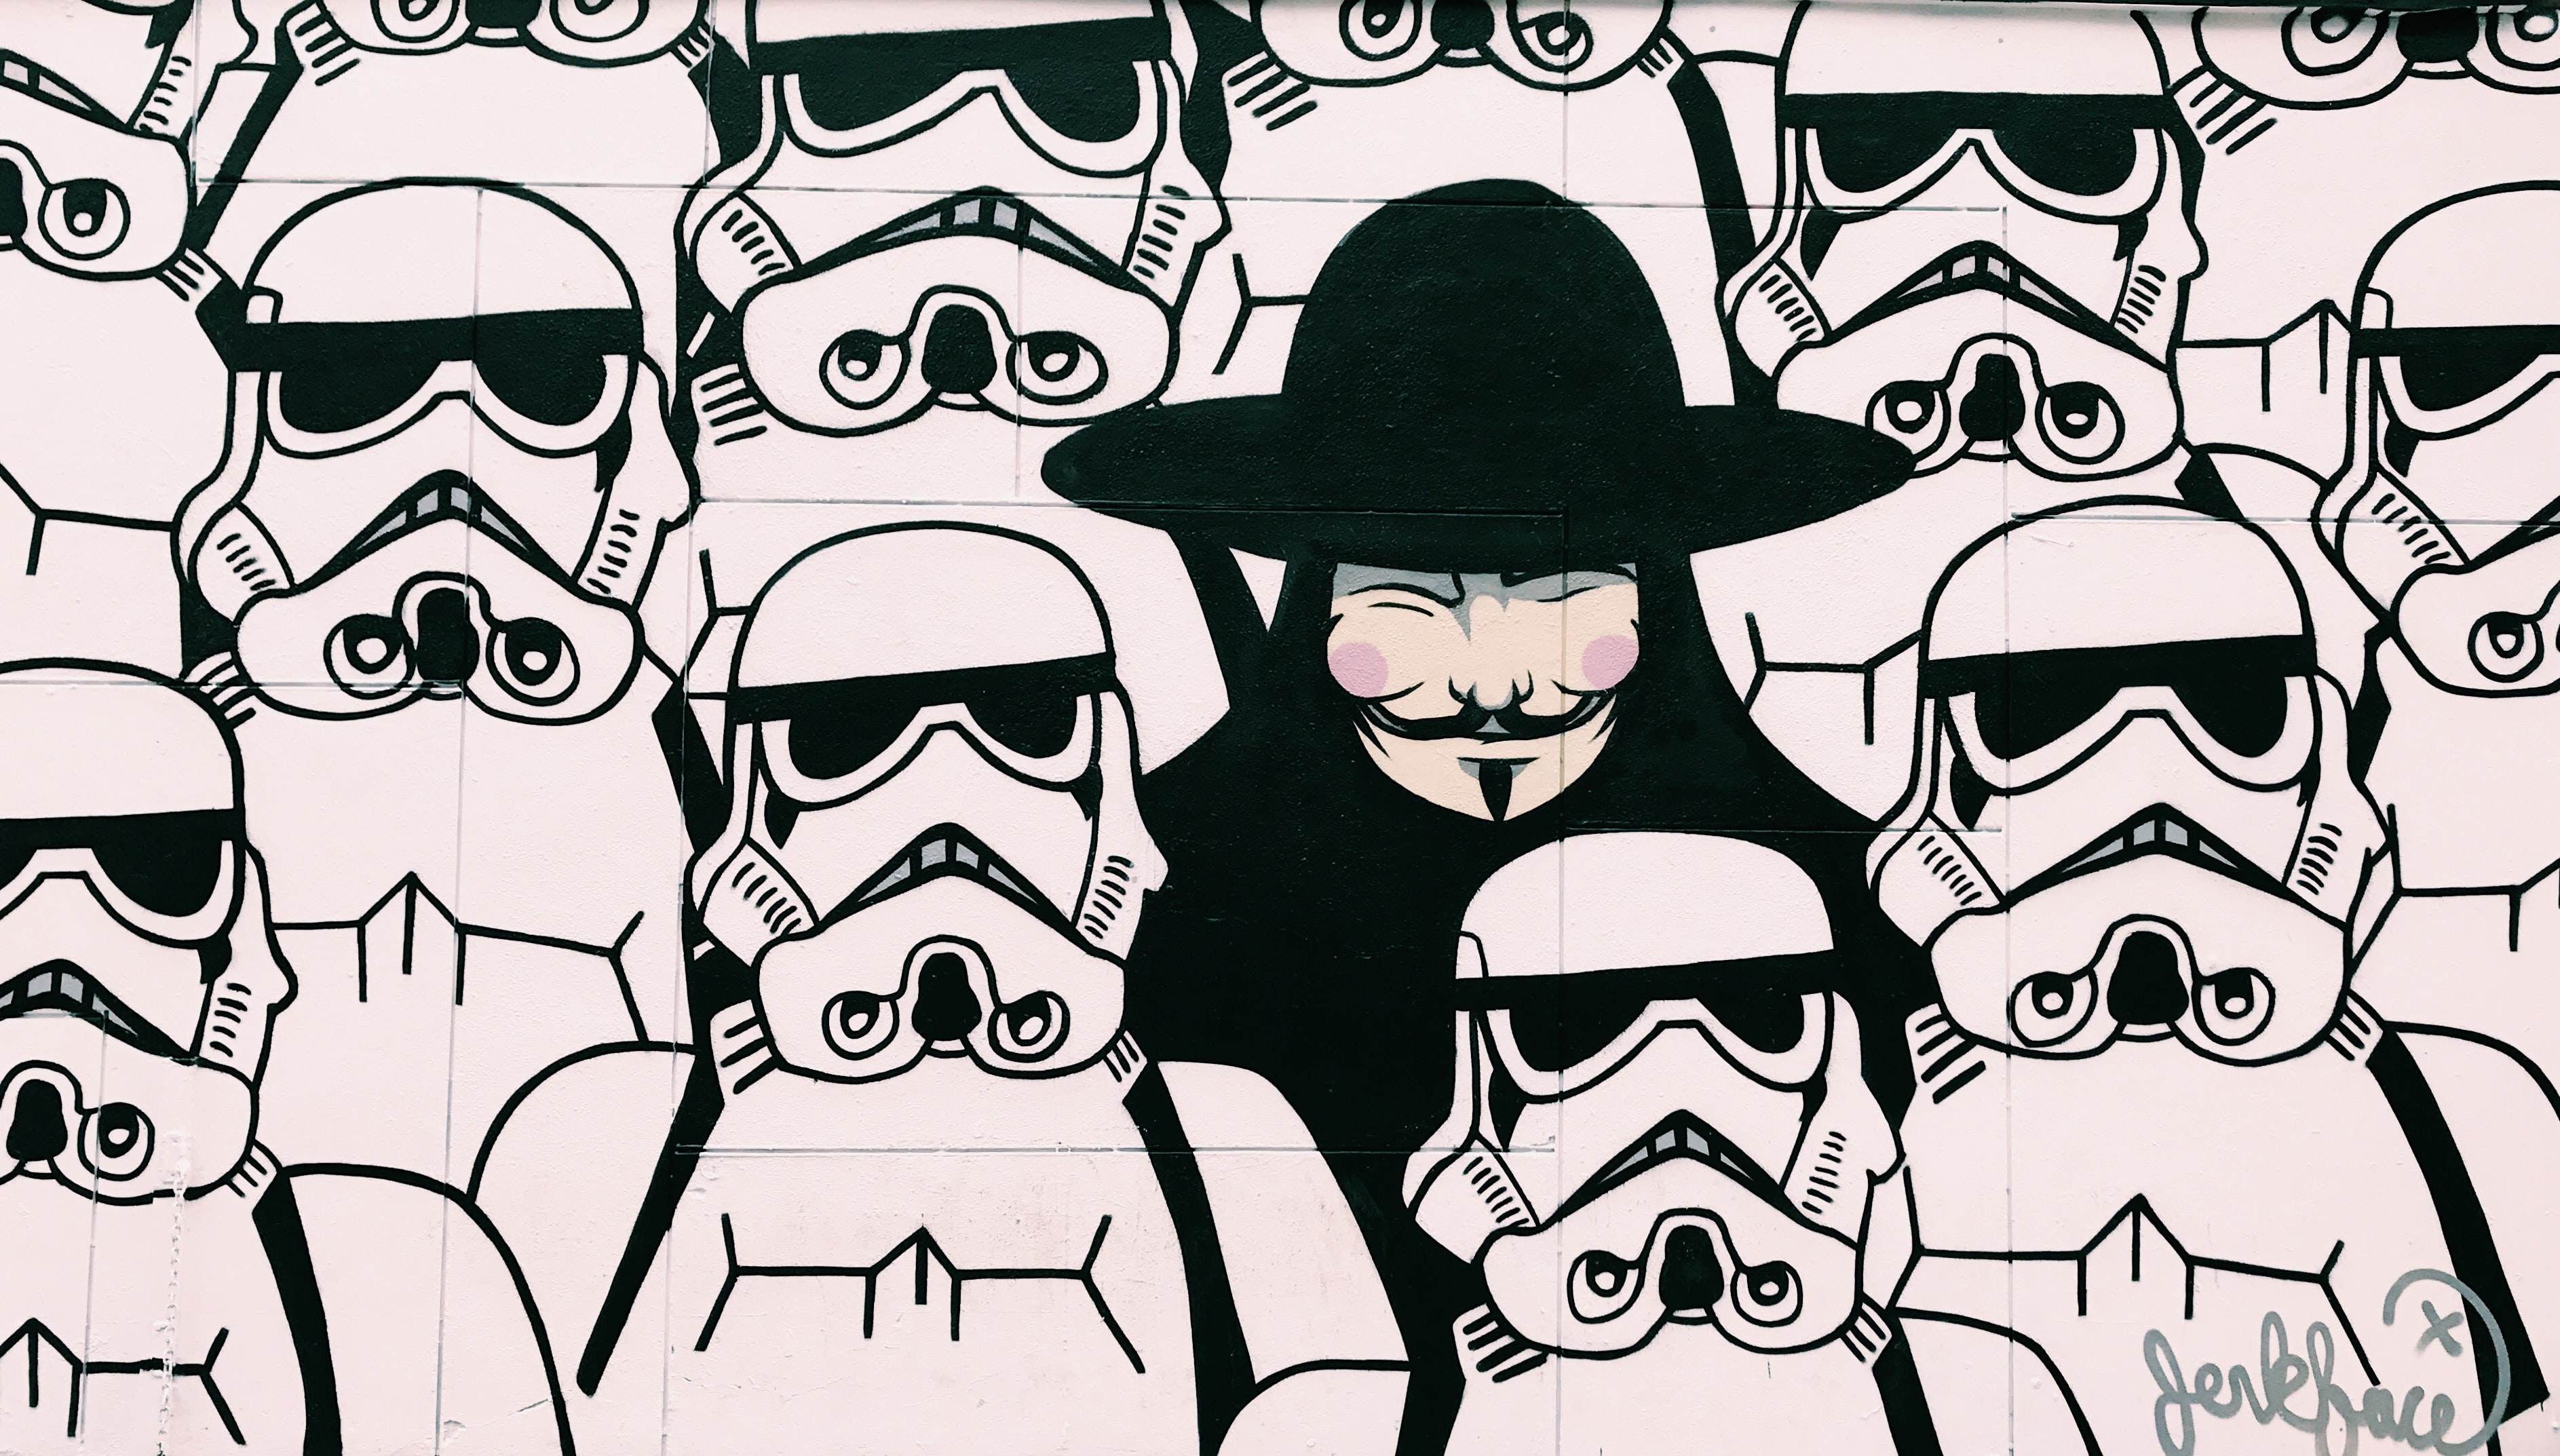 Anonymous Guy Fawkes from V from Vendetta figure amongst group of Star Wars stormtroopers in New York, Texas, United States